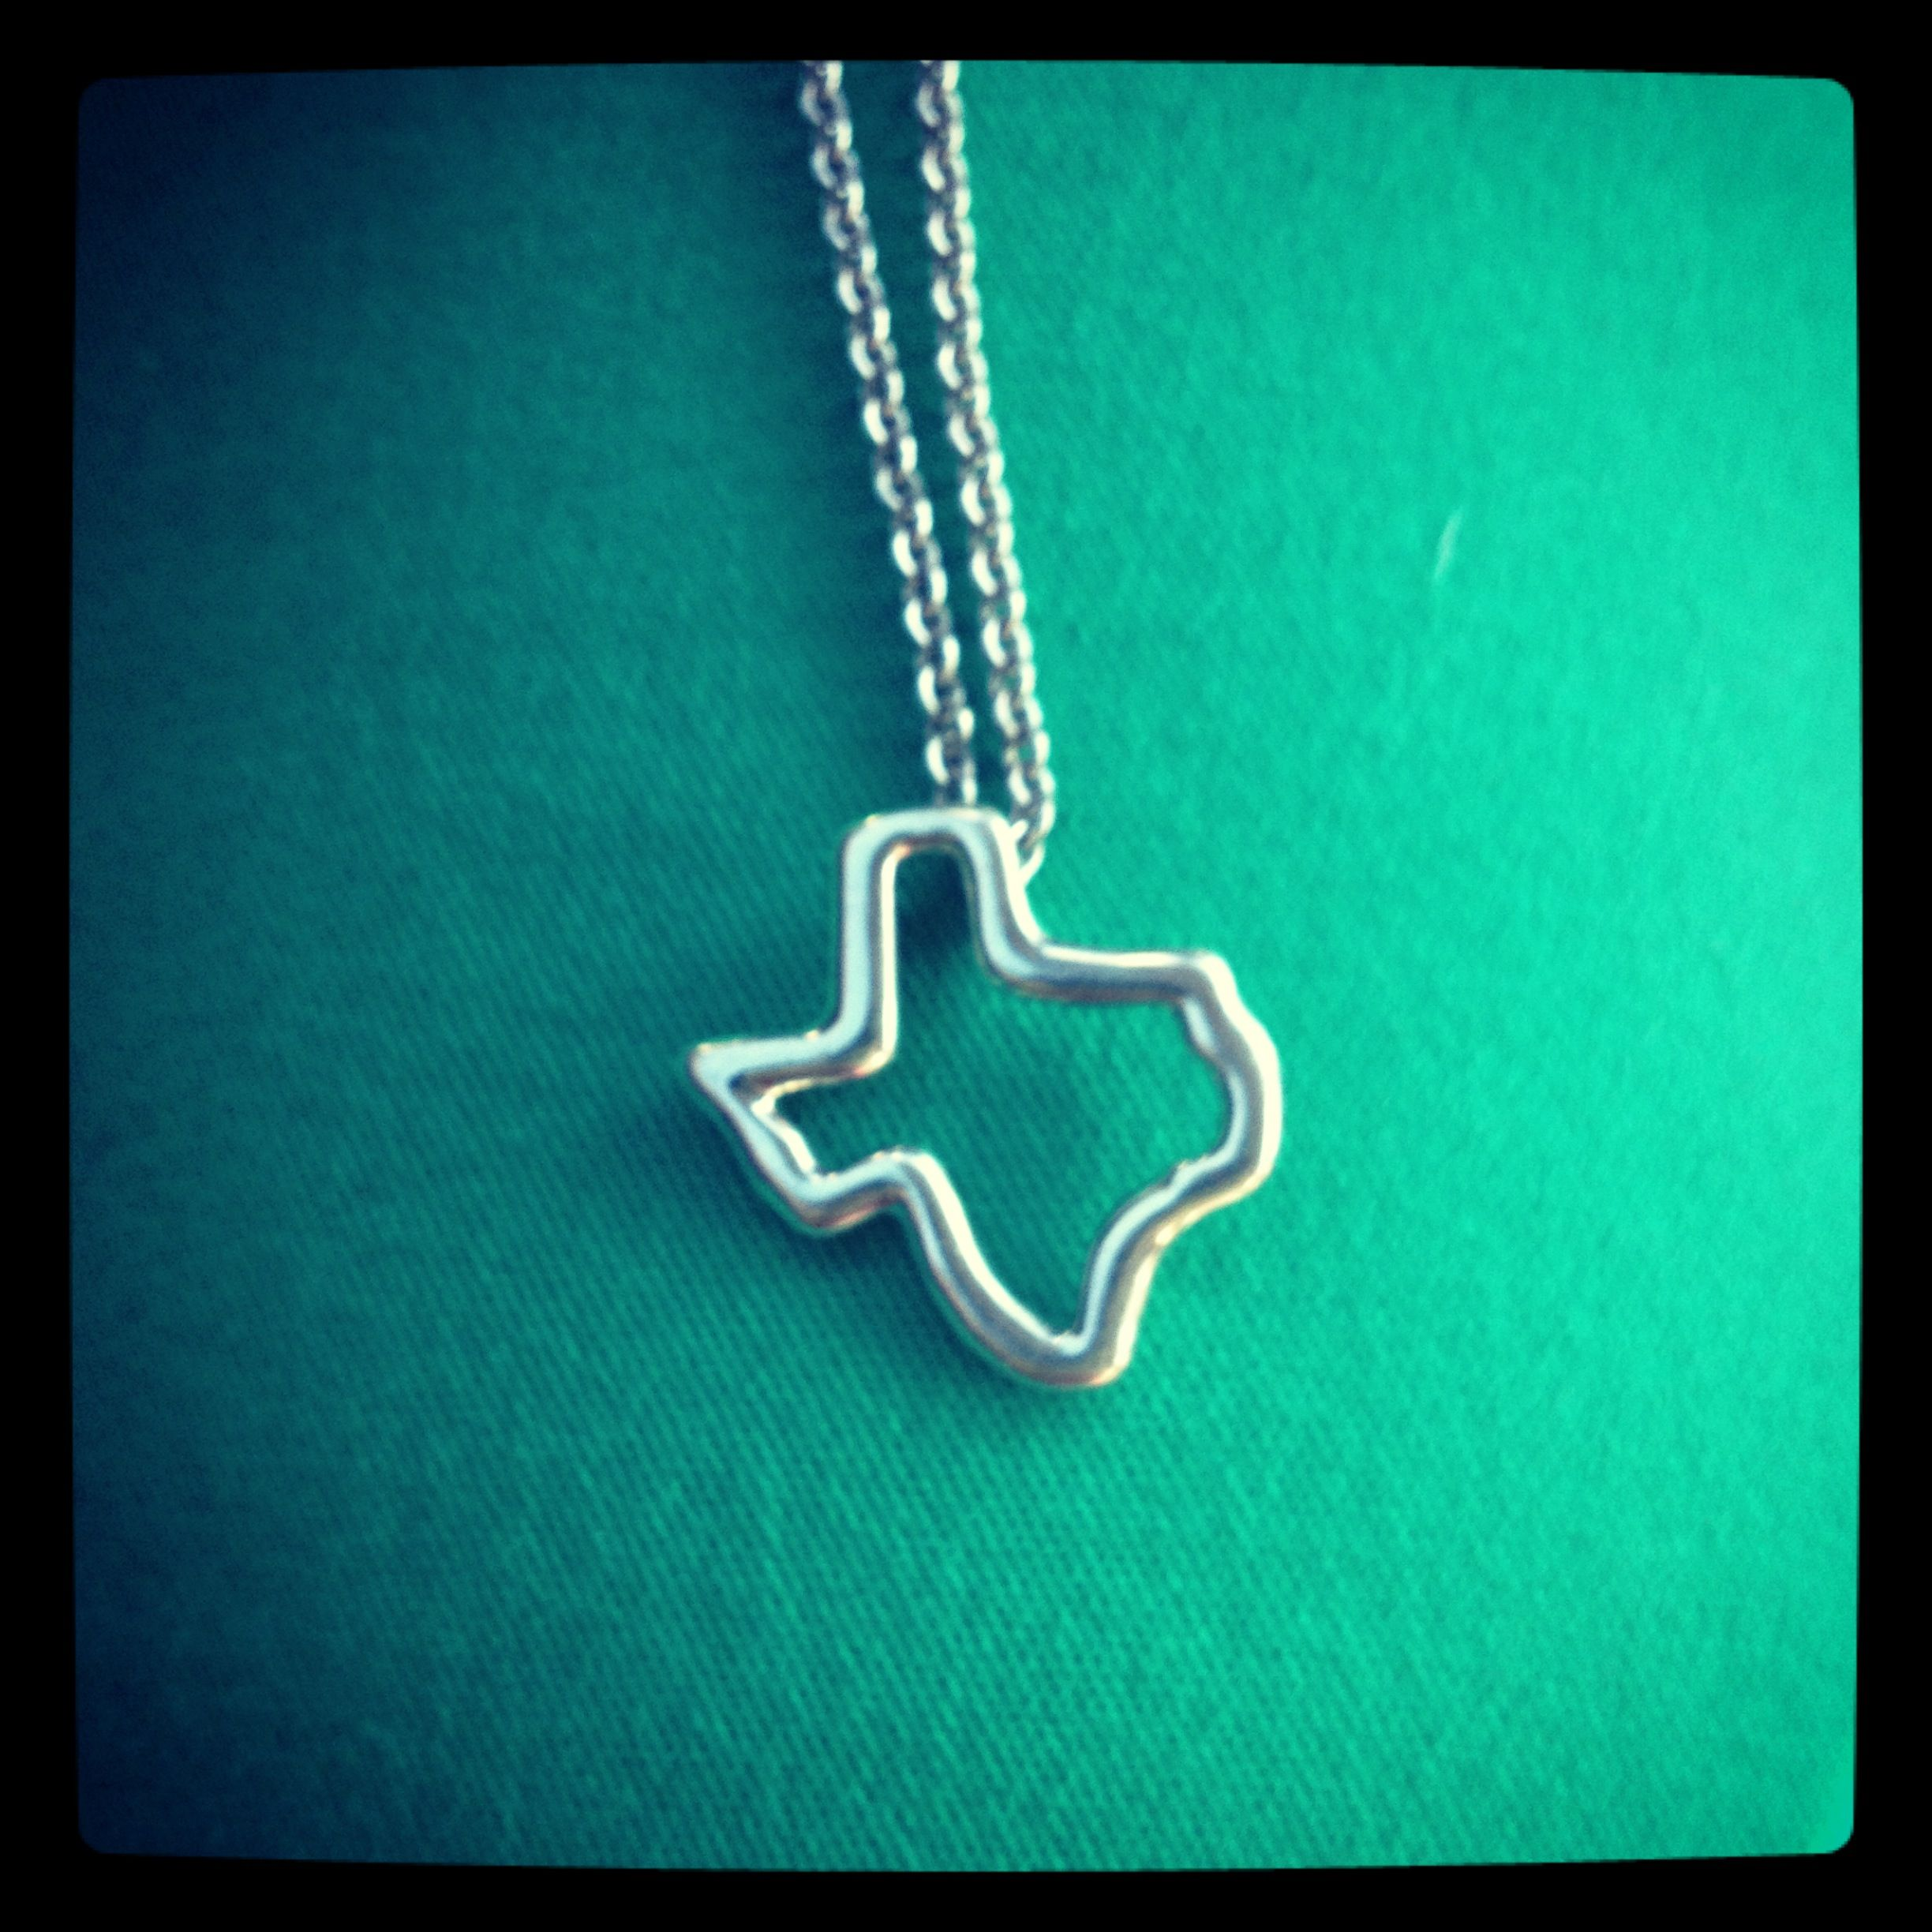 Freeform texas pendant from james avery jewelry jamesavery freeform texas pendant from james avery jewelry jamesavery pinterest viewer mozeypictures Choice Image